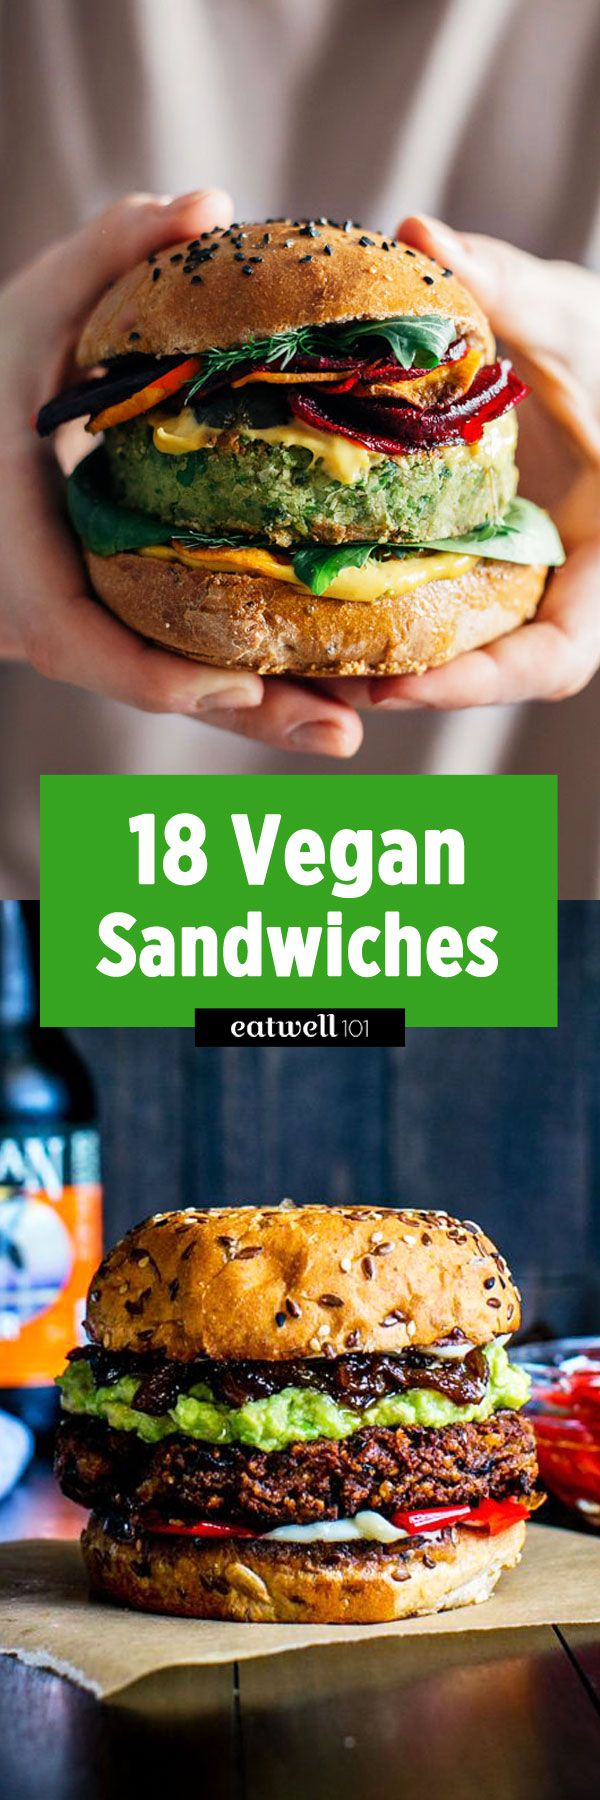 If you like eating something that will give you energy and won't throw you into a midday food coma— especially if you're at work or school—vegan sandwiches are a serious option. Filled with h…